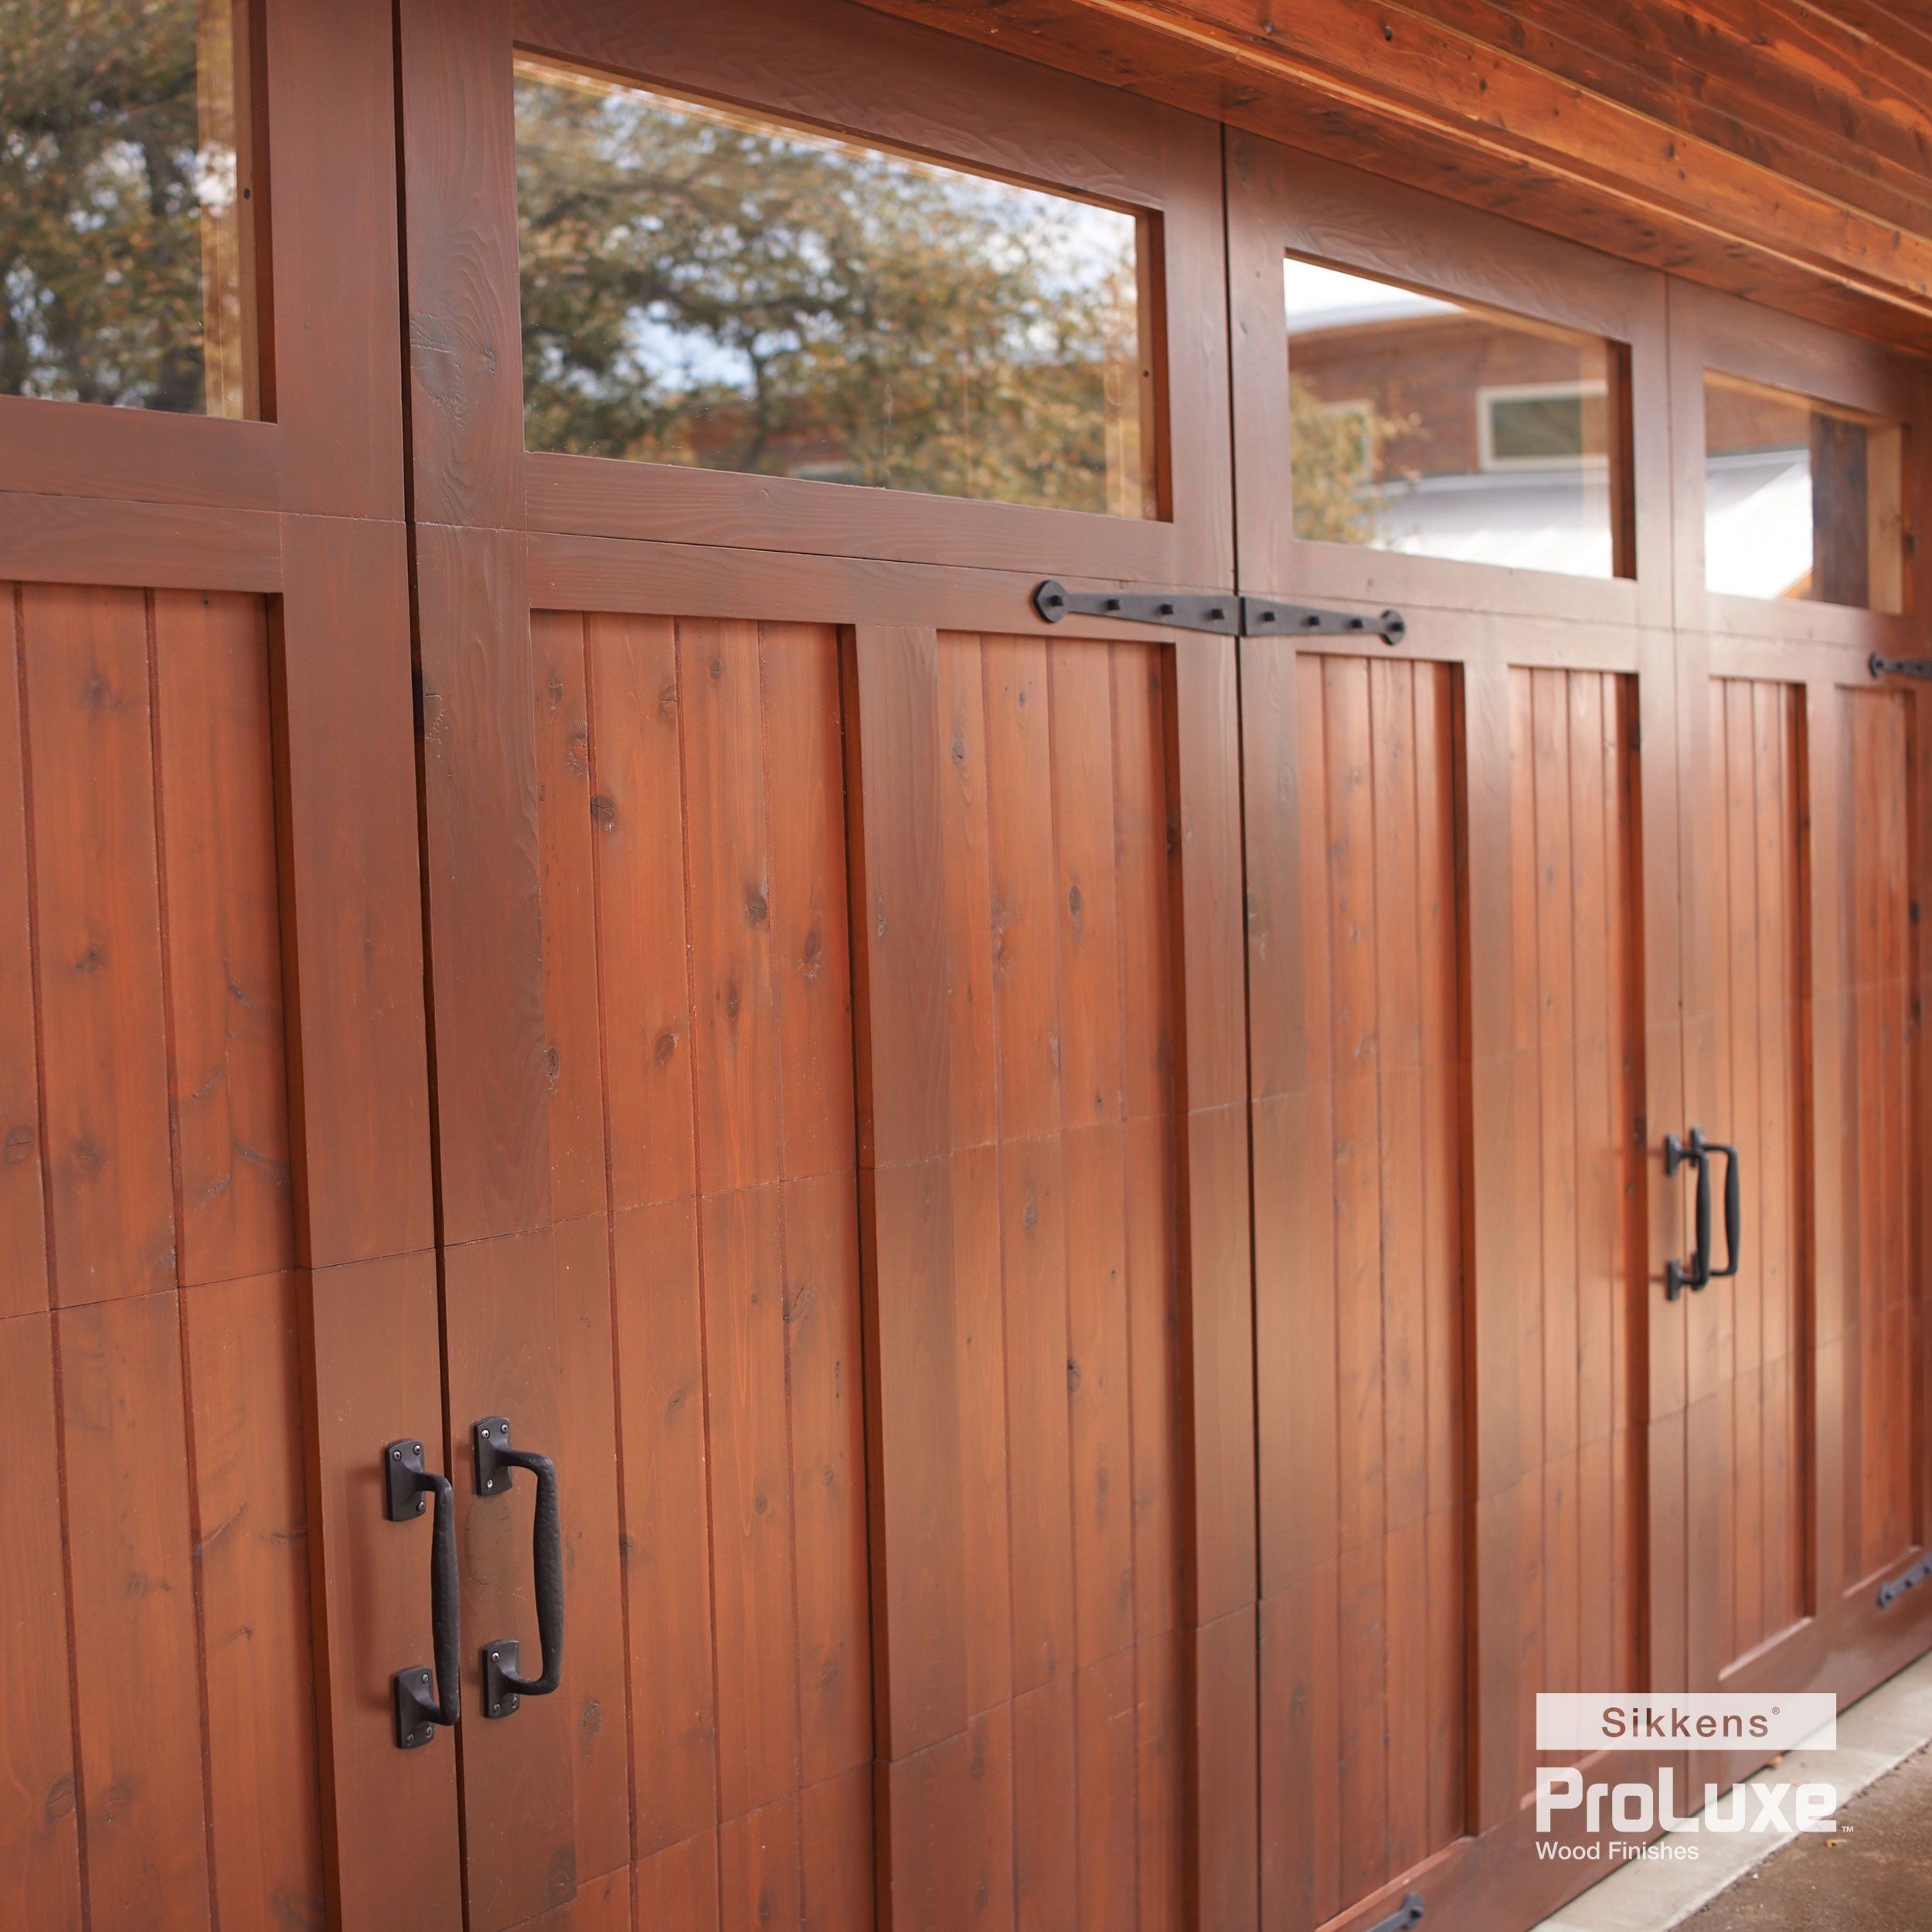 Featuring Sikkens Proluxe Cetol Srd In Mahogany Exterior Wood Wood Garage Doors Prairie Home